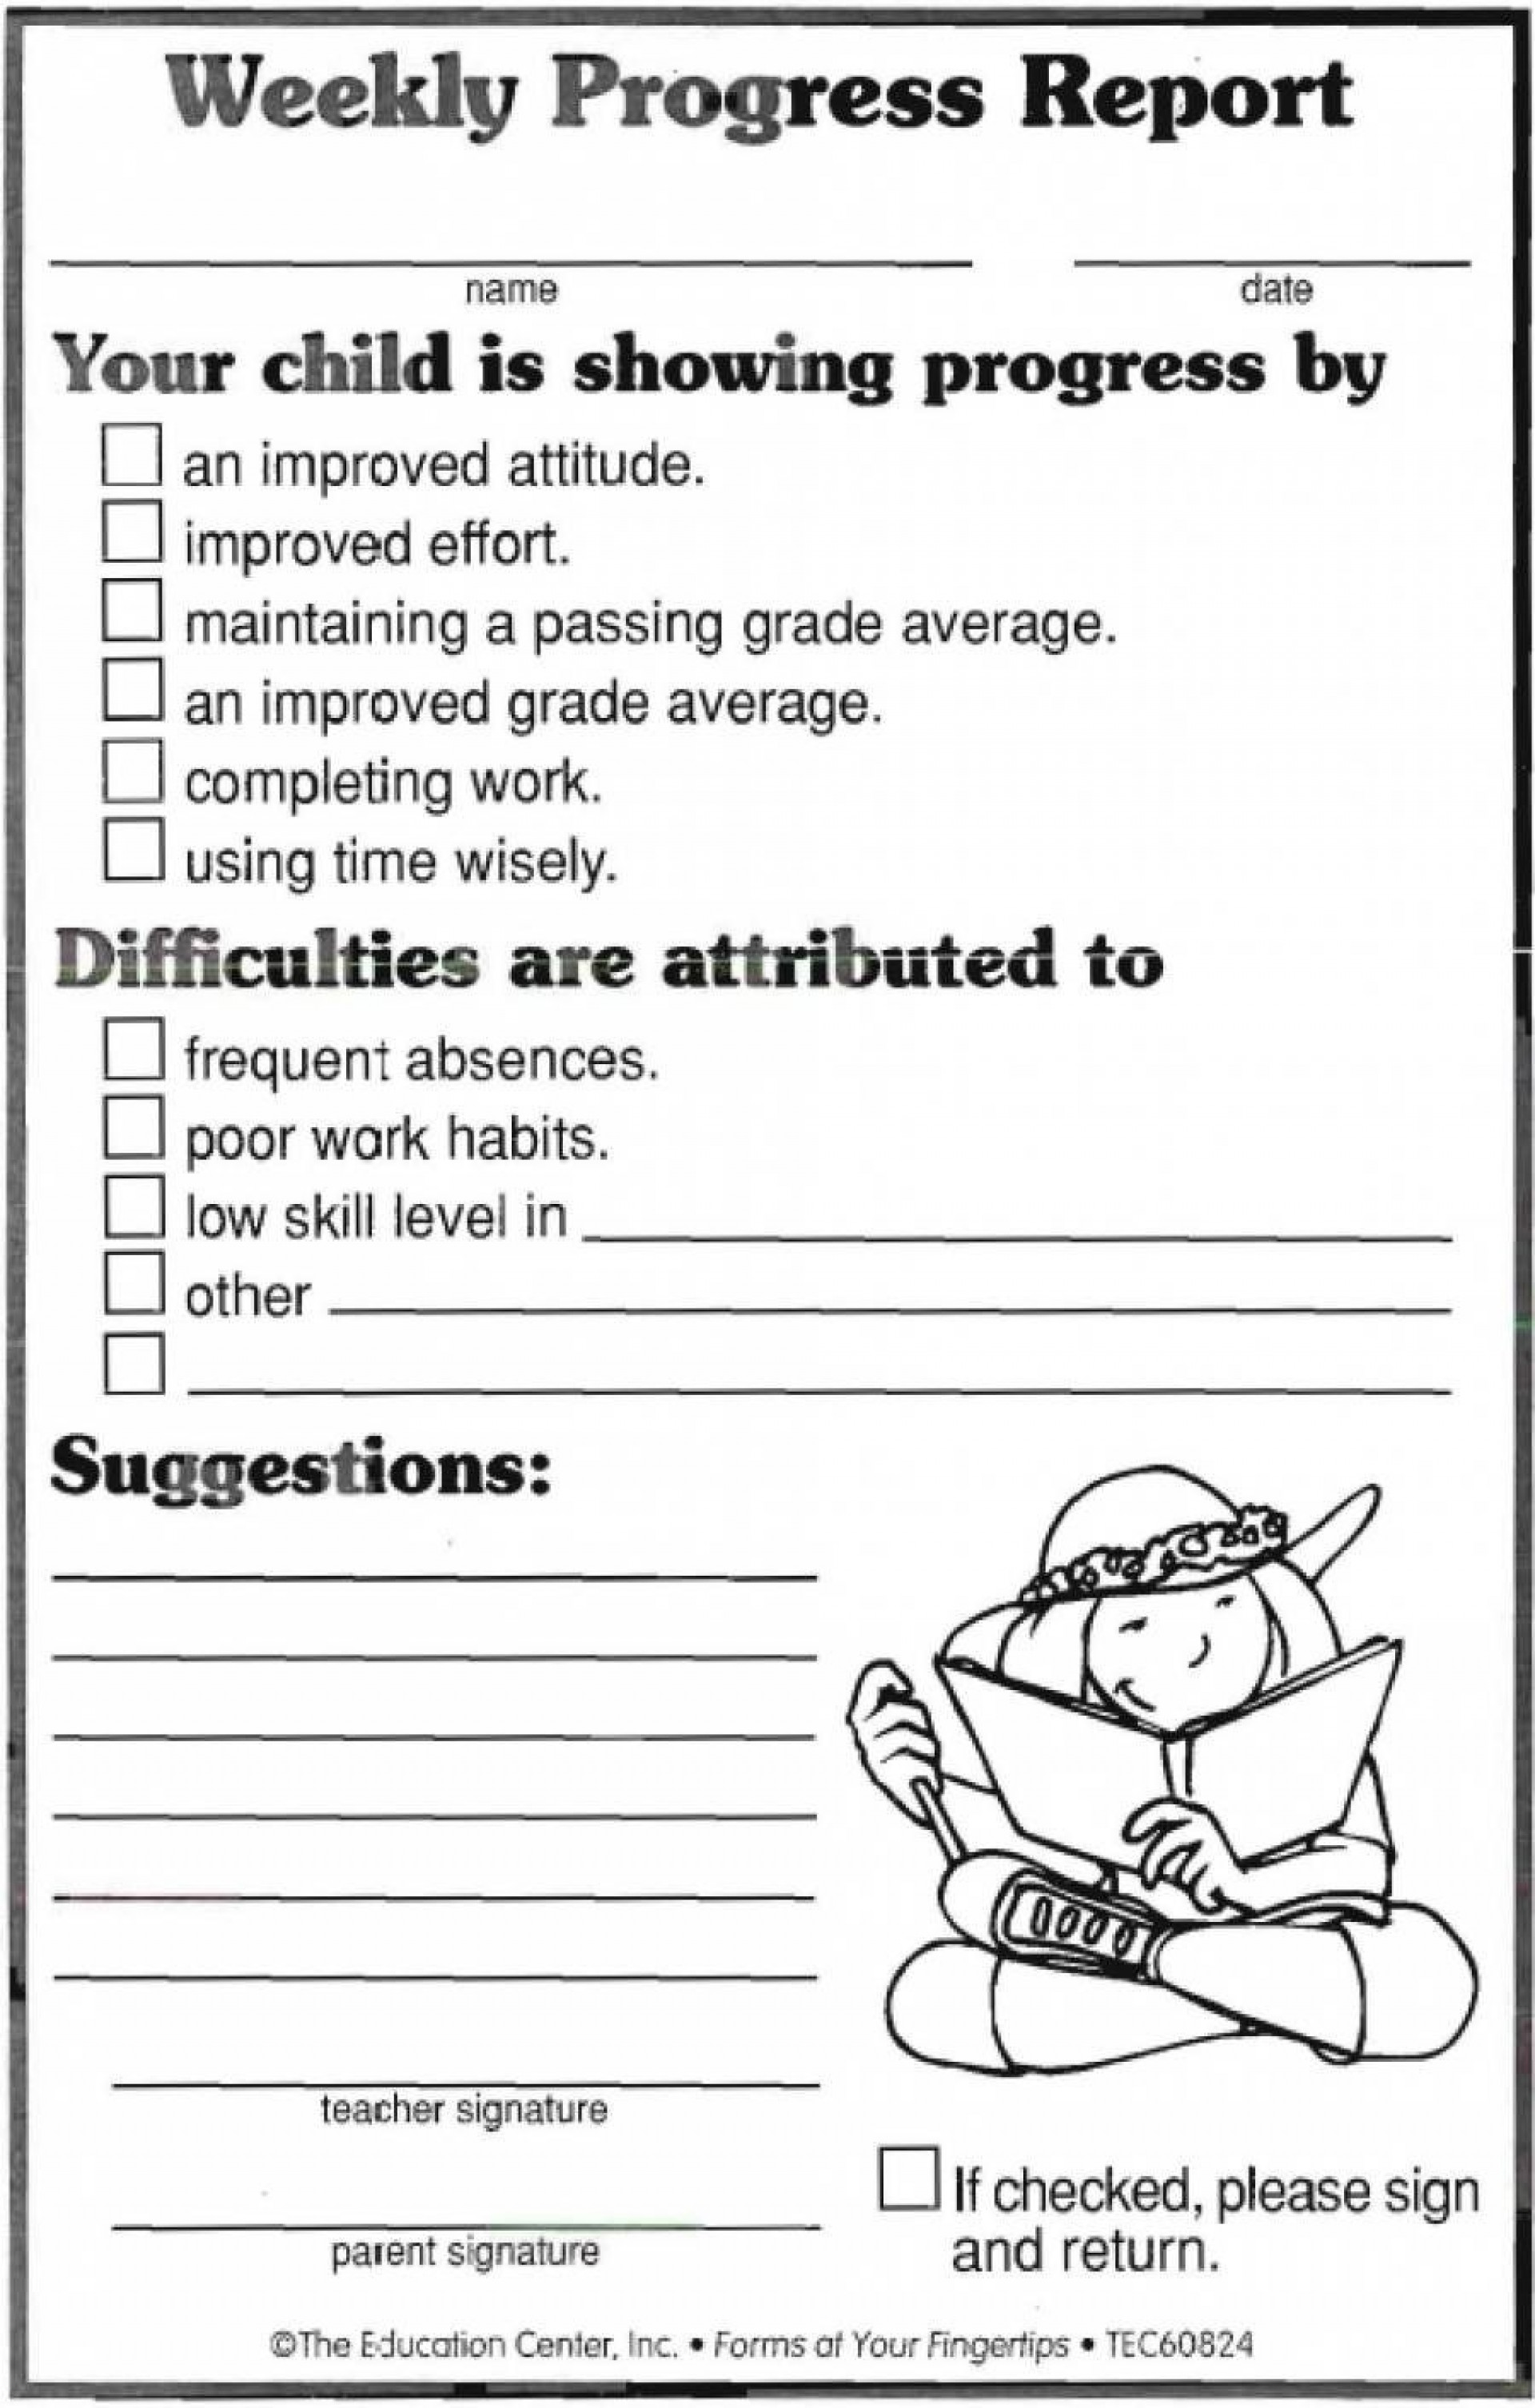 009 Striking Preschool Daily Report Template High Definition  Form Baby Sheet1920